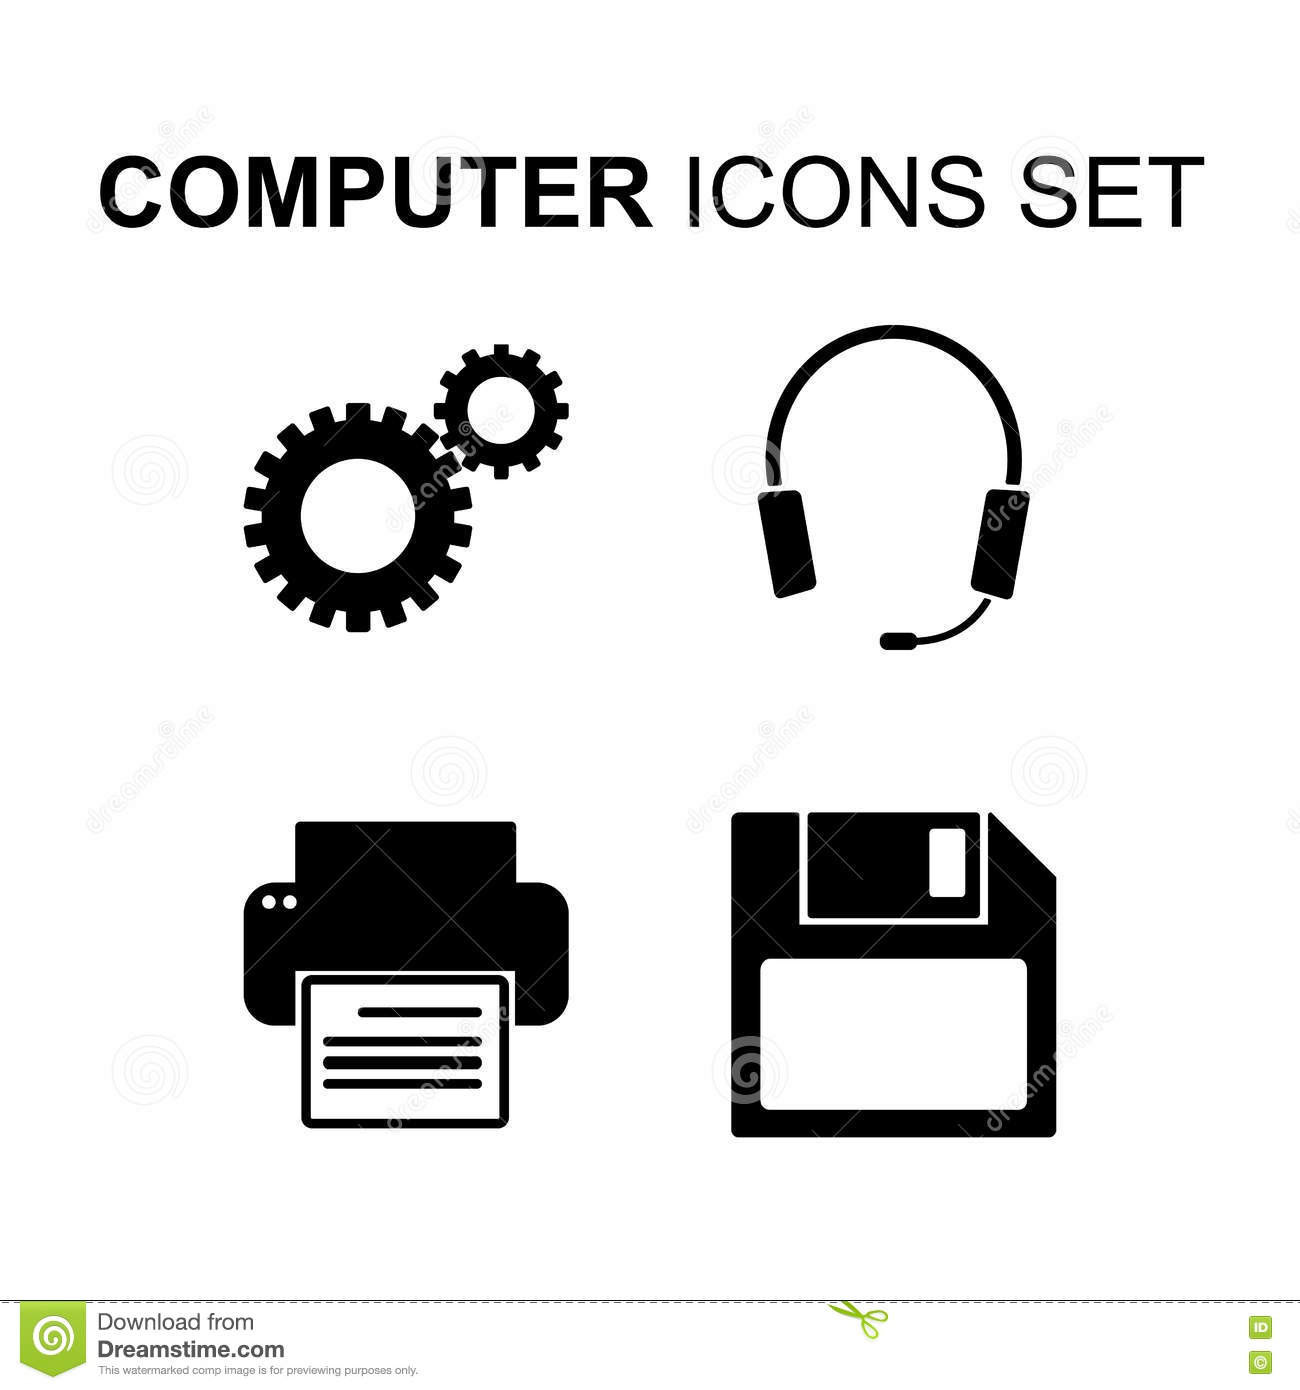 Computer Technology Vector Symbols Or Icons Set Cartoon